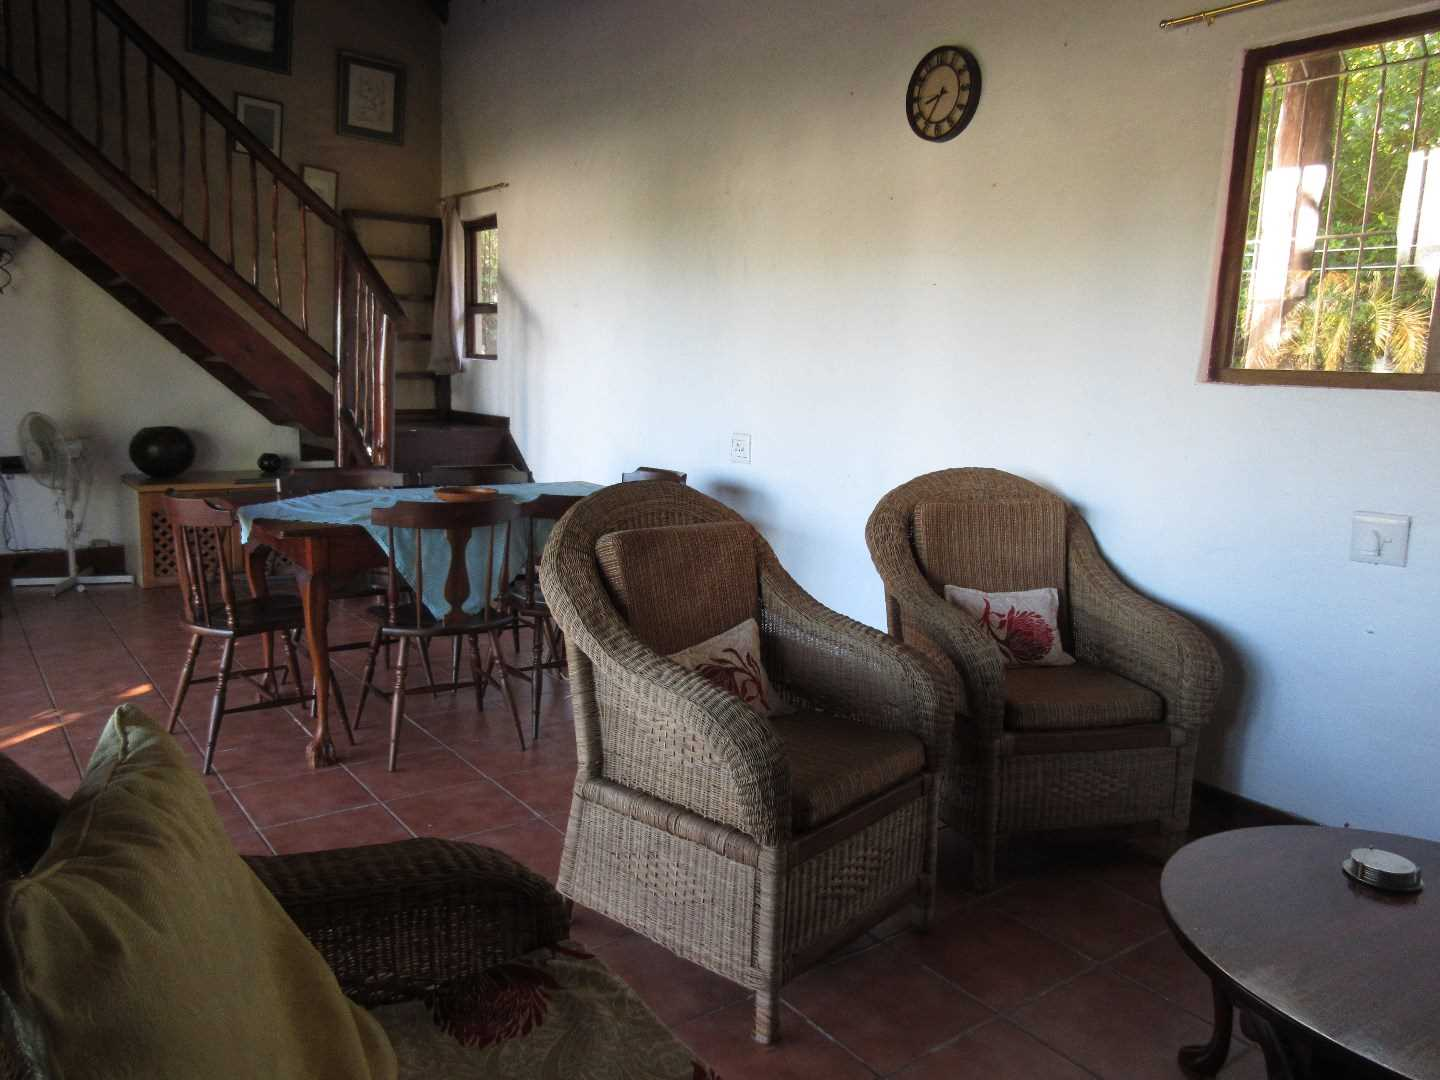 Interior of Thatched Dwelling